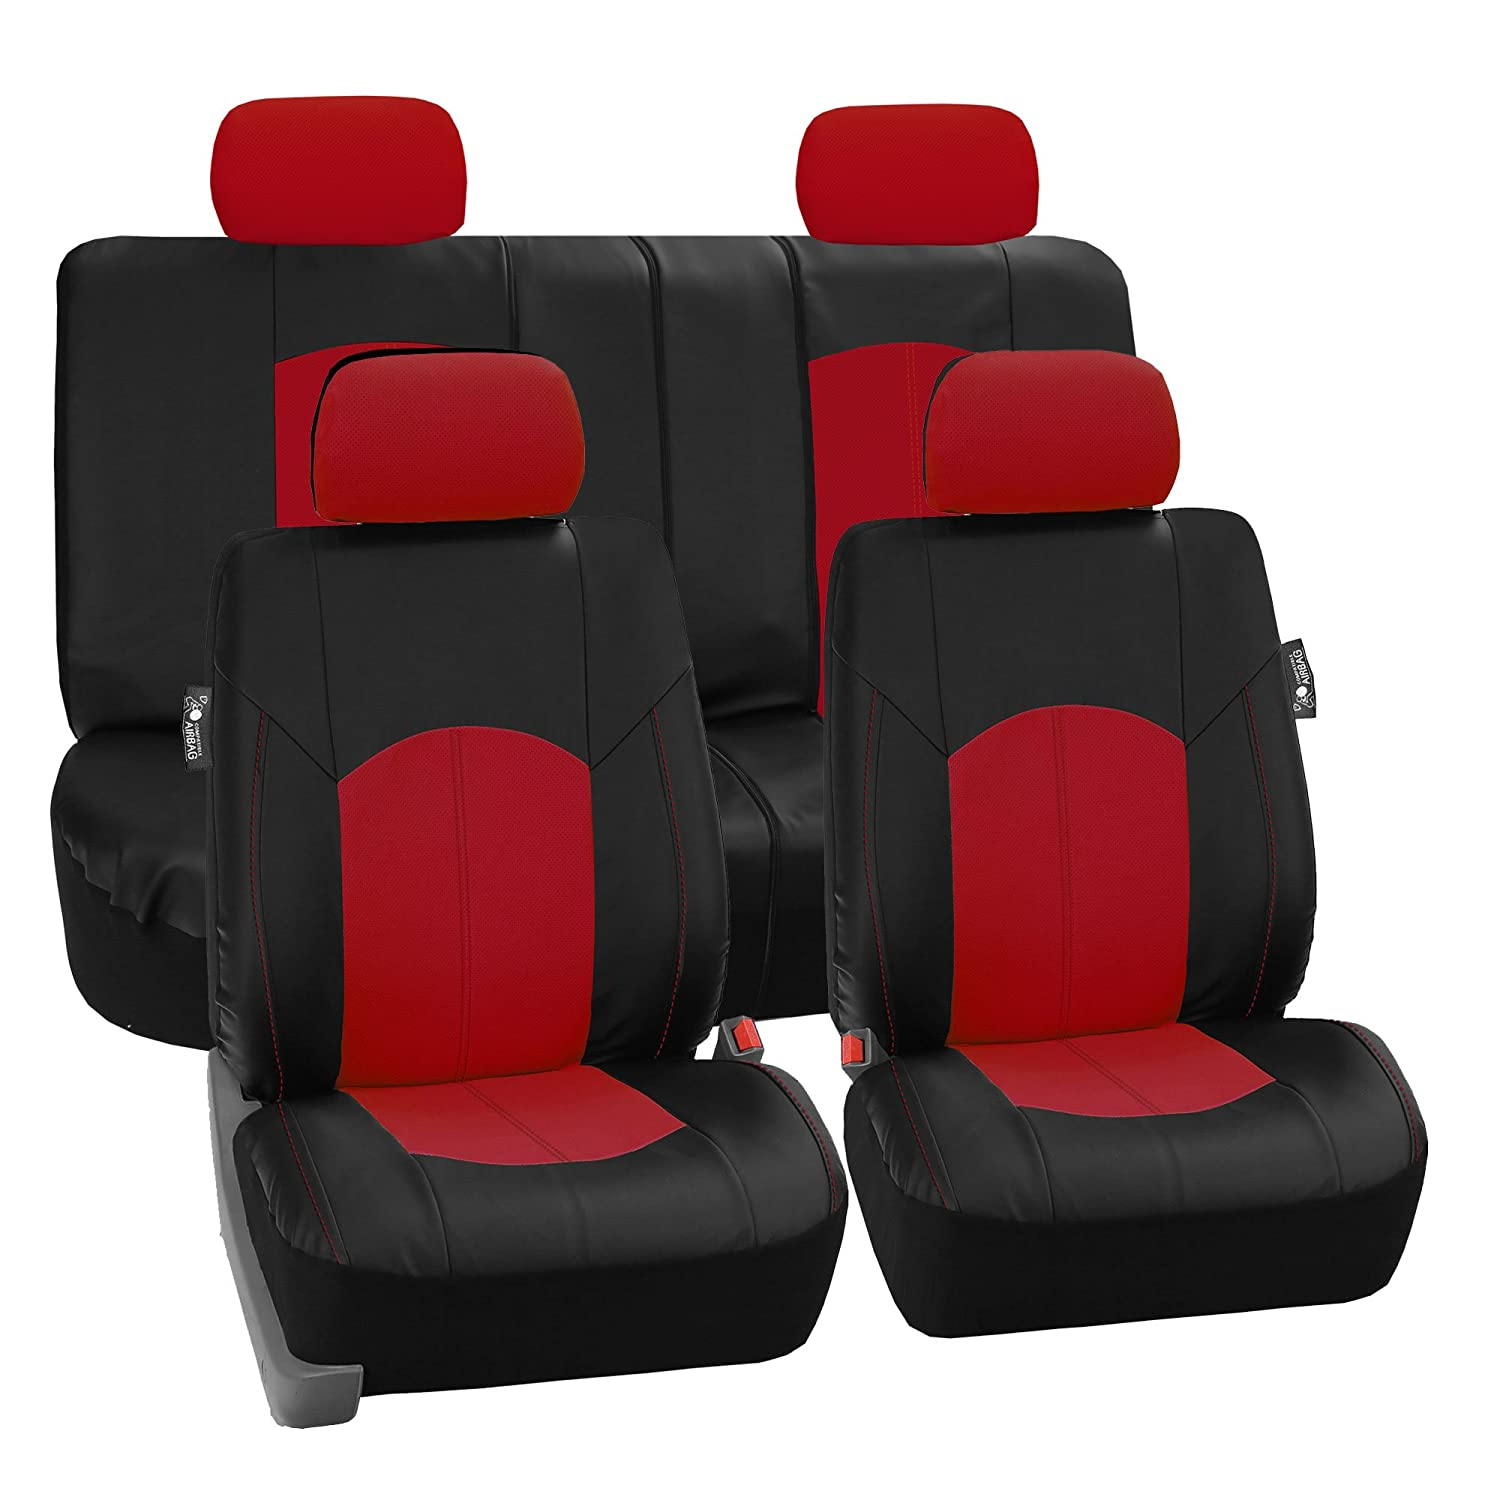 FH-PU008114 Perforated Leatherette Full Set Car Seat Covers, (Airbag & Split Ready), Solid Black Color - Fit Most Car, Truck, Suv, or Van FH Group